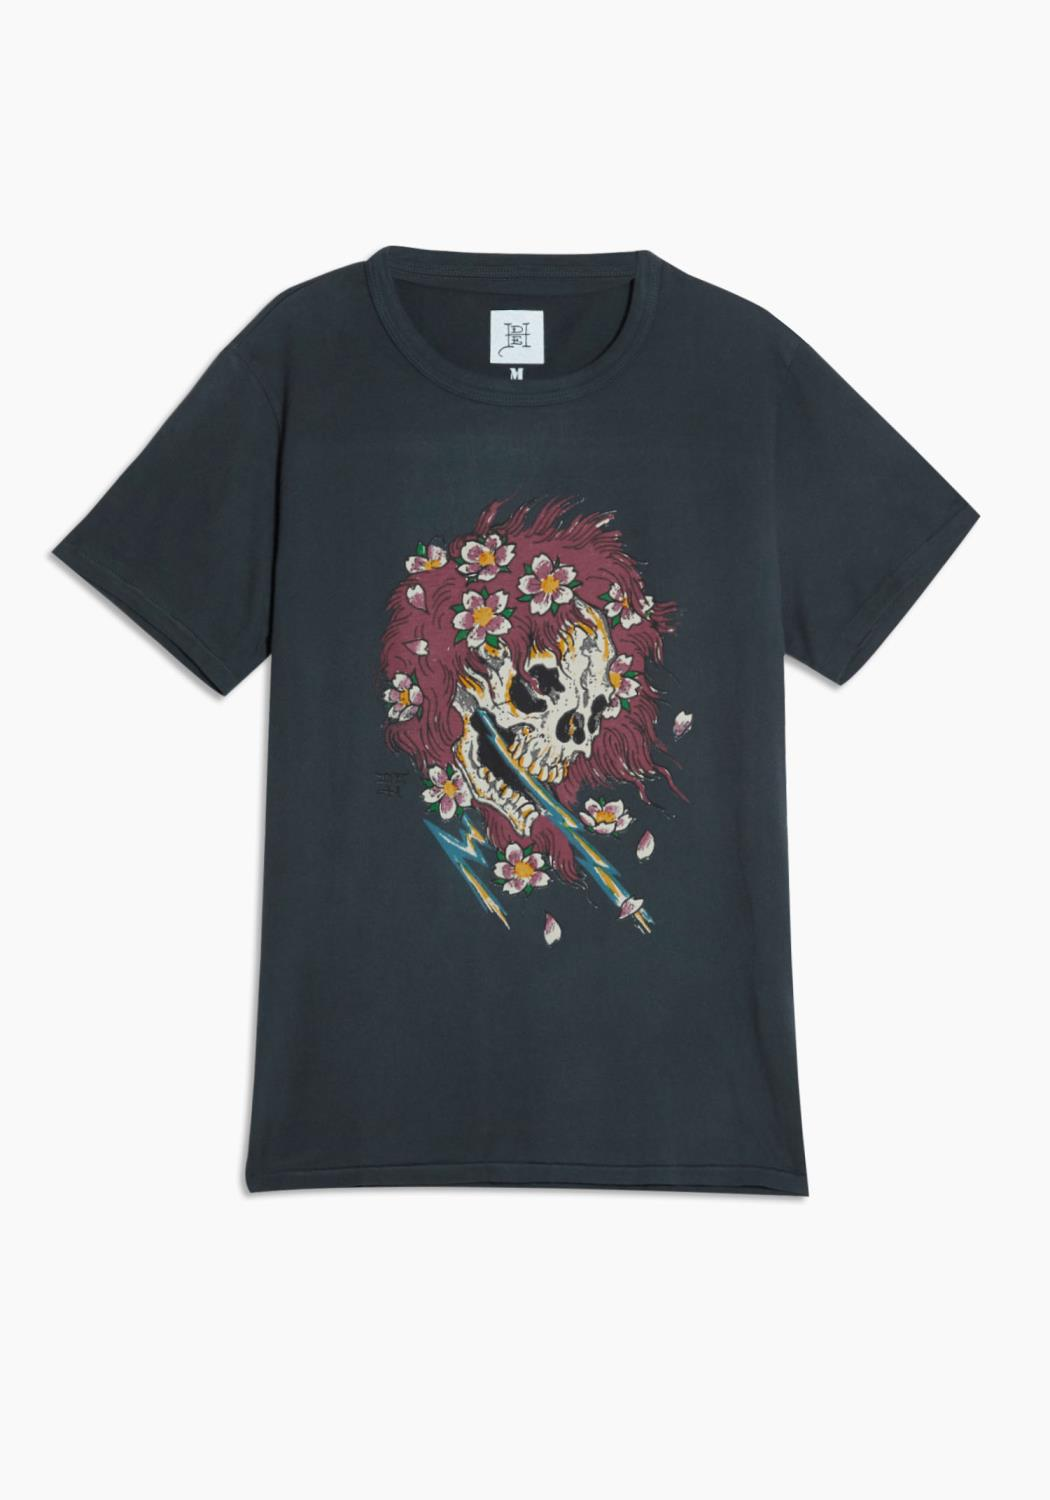 Ed Hardy Red Haired Skull Tee in Vintage Charcoal